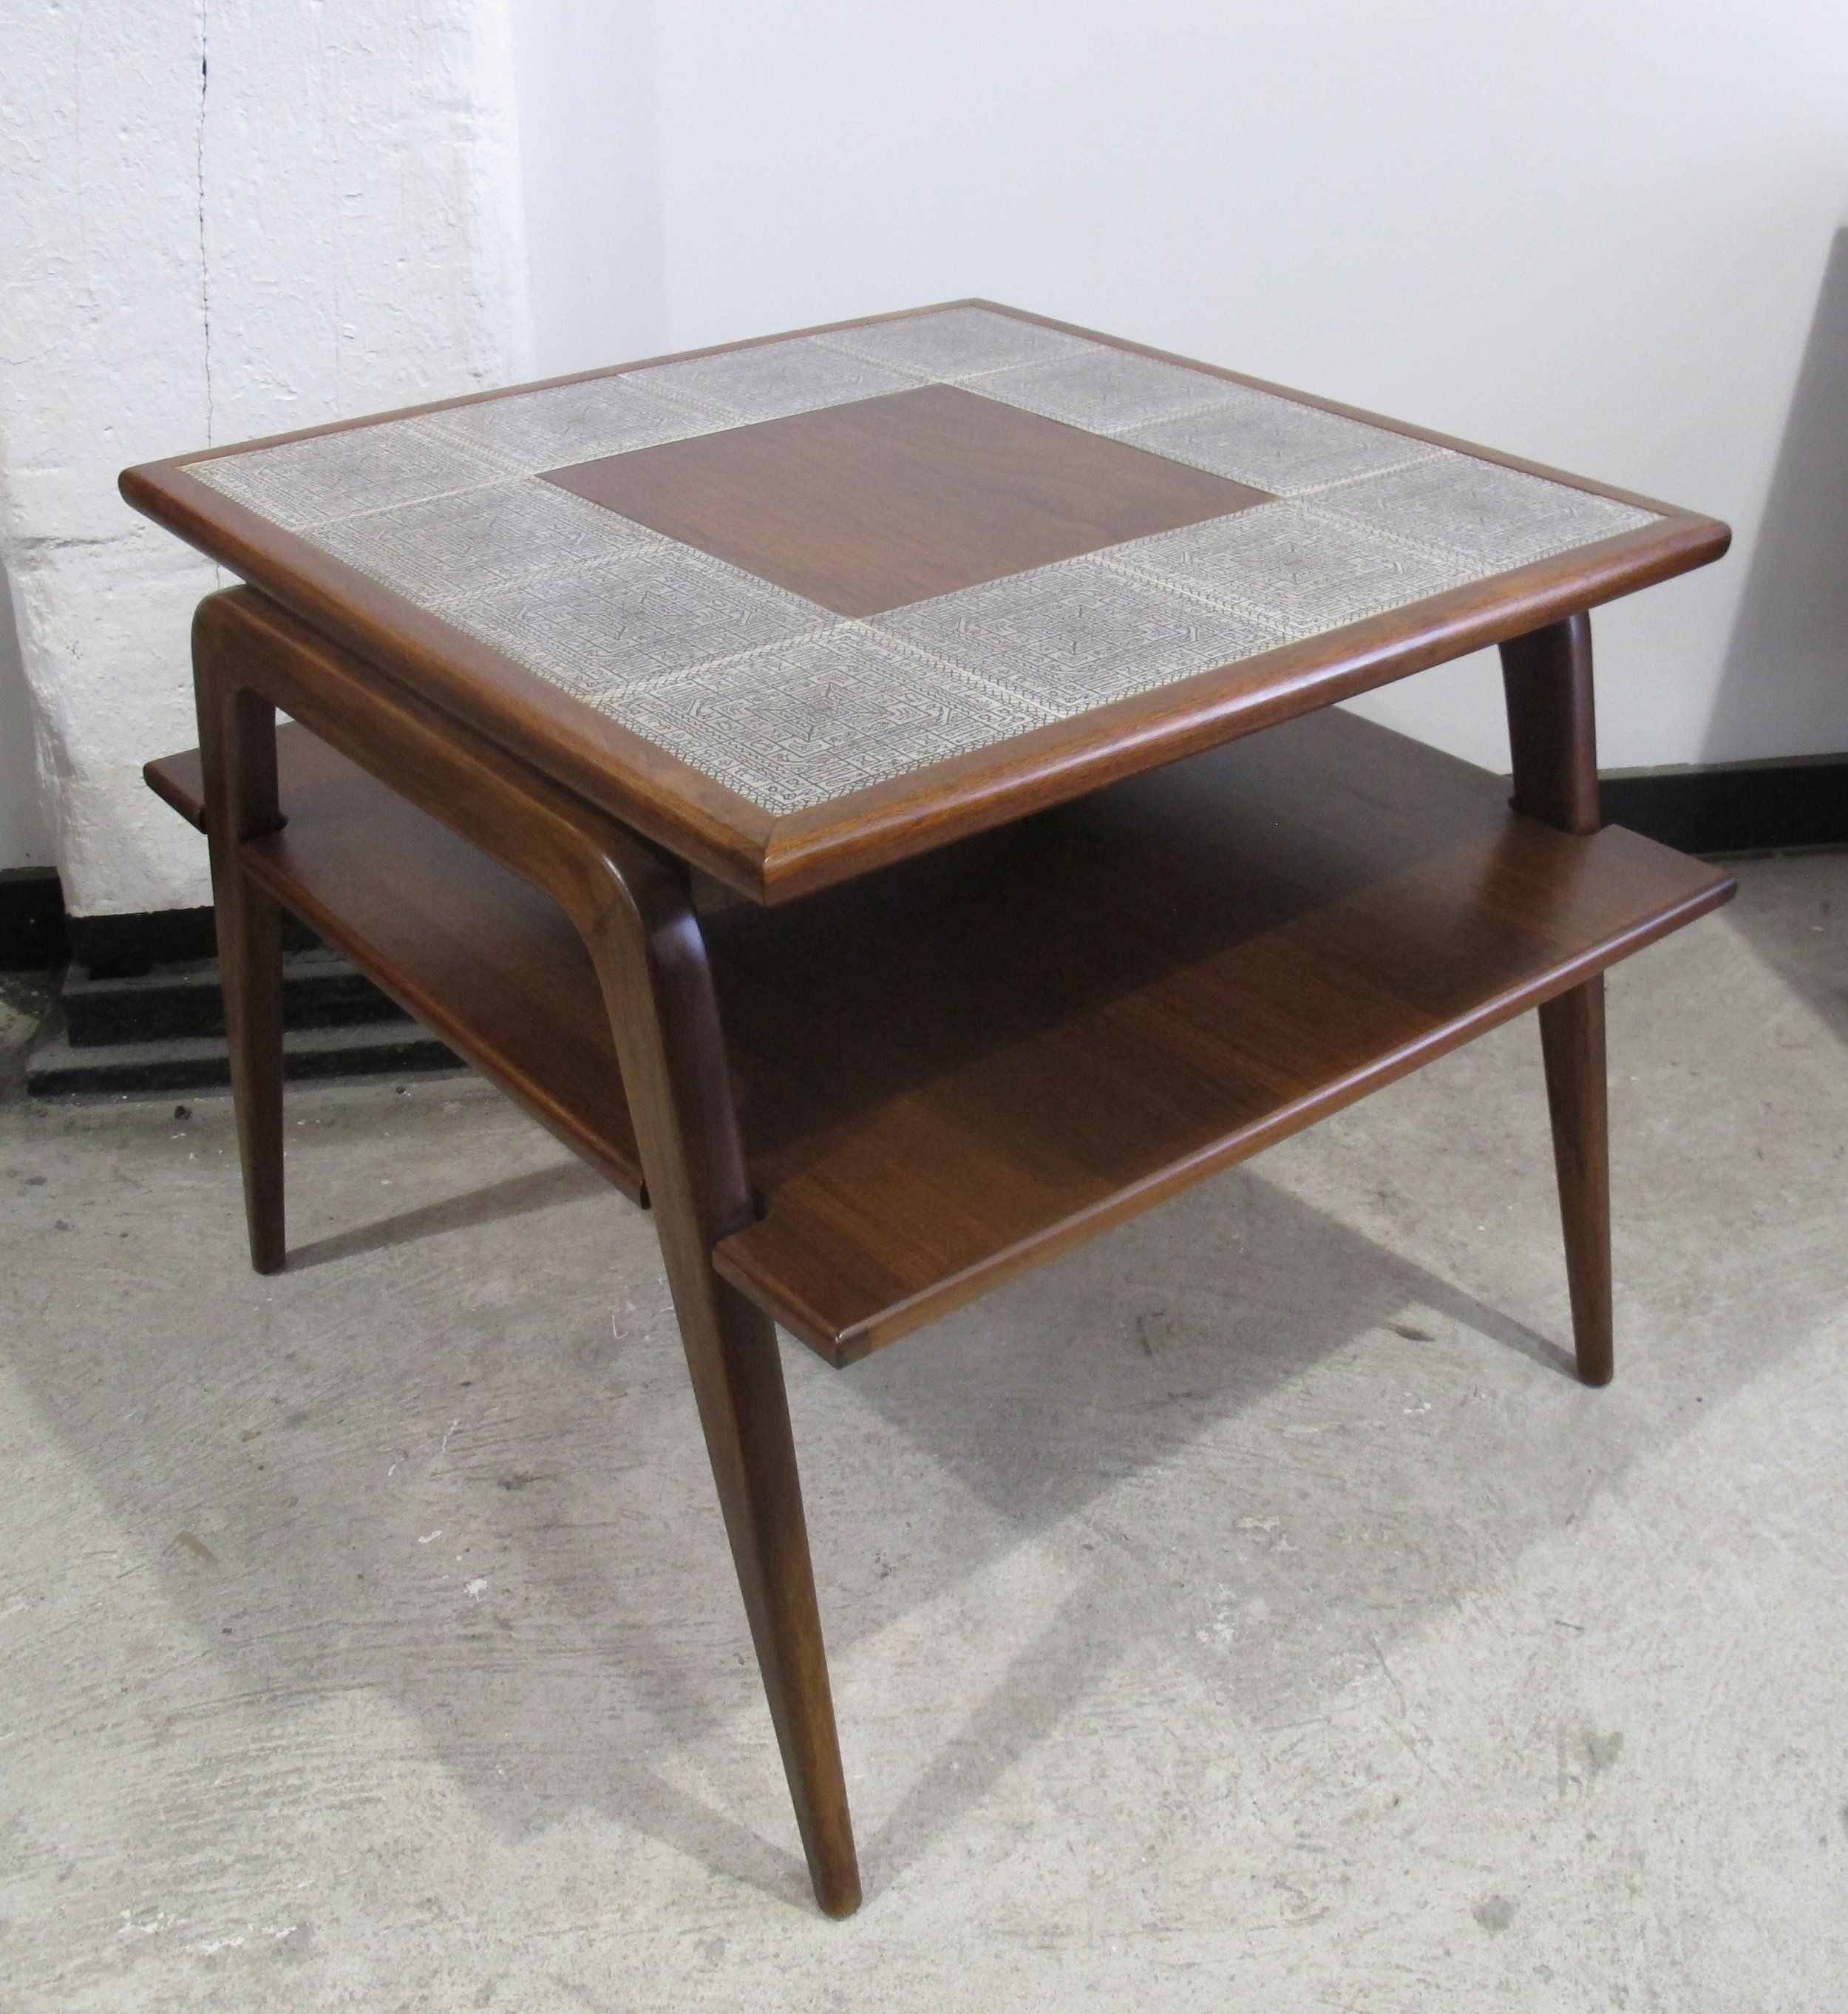 MID CENTURY TILED WALNUT TWO-TIER SIDE TABLE